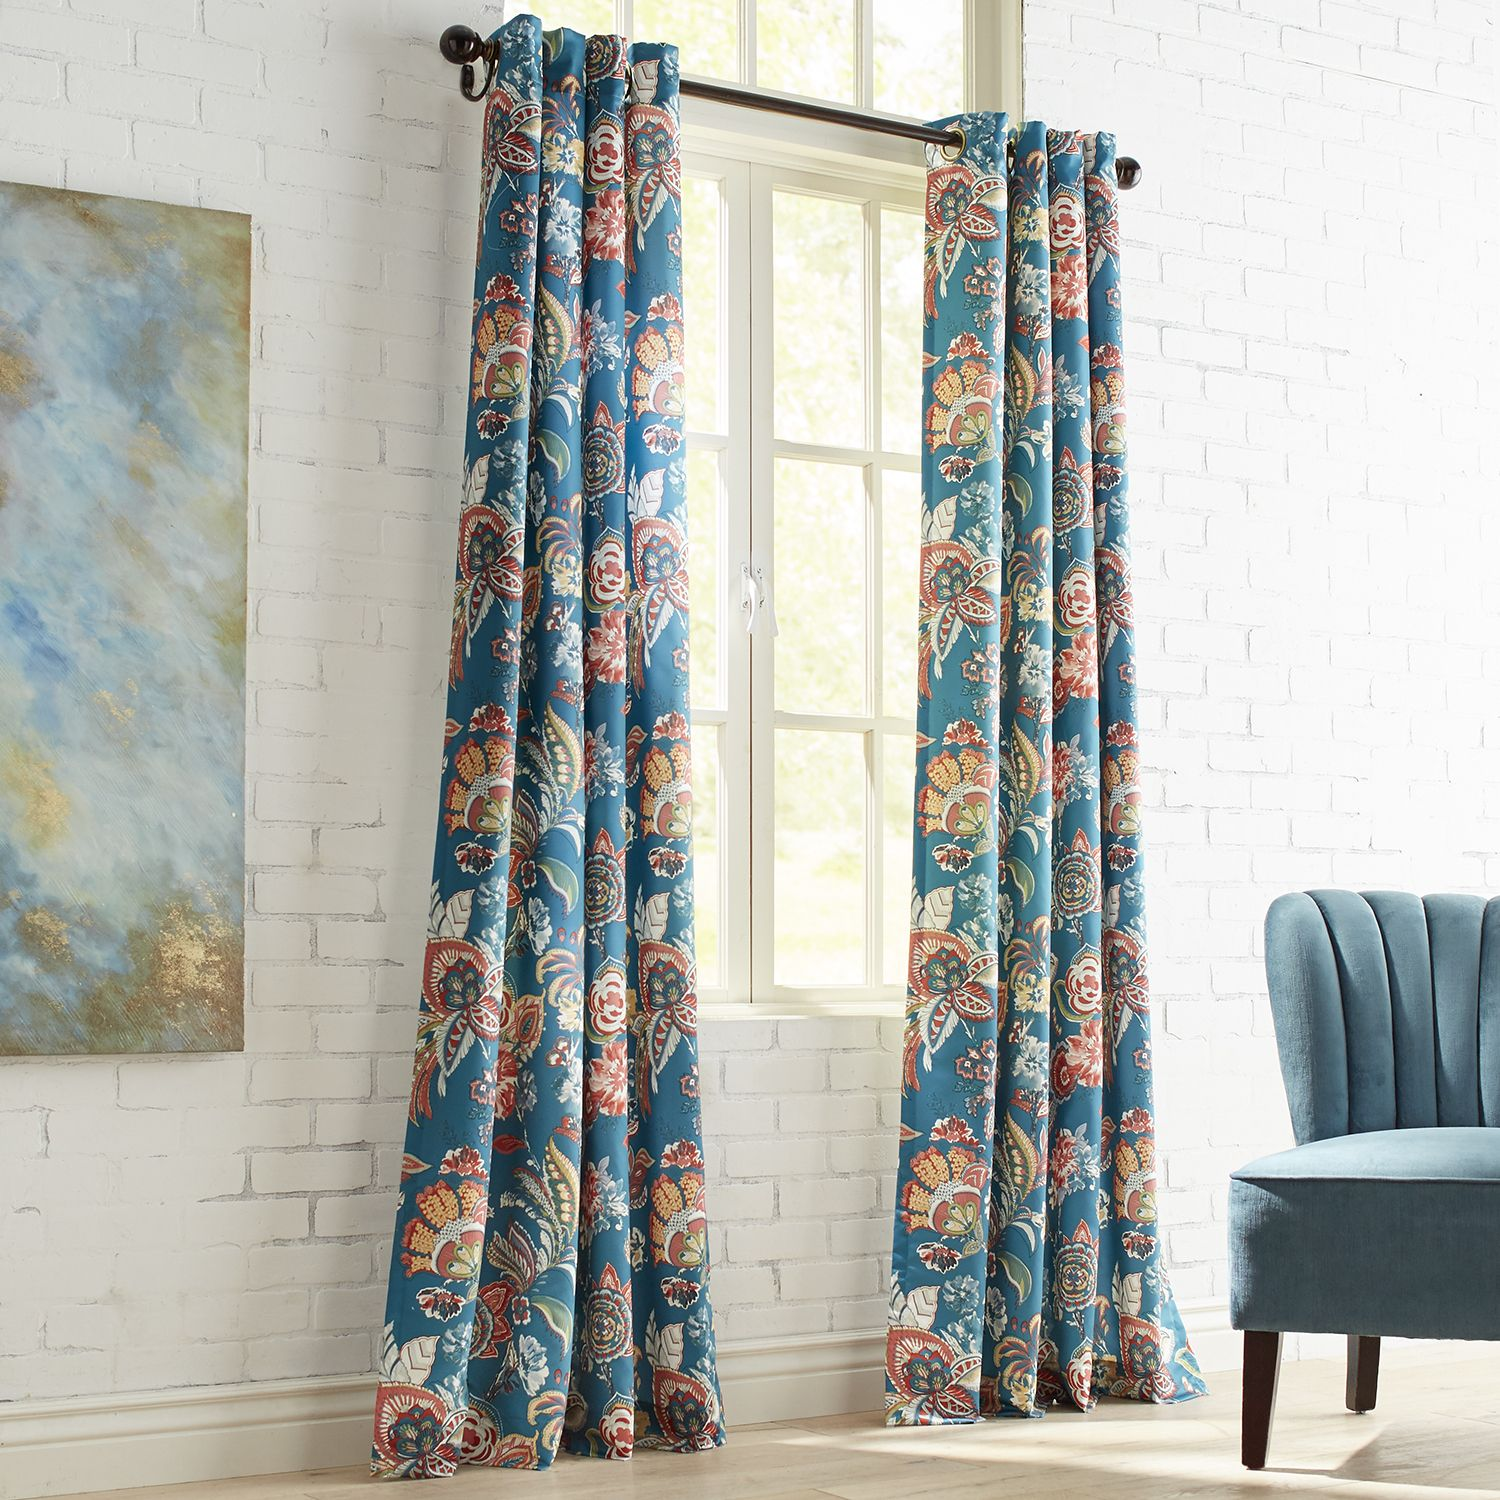 Ashford Floral Teal Grommet Curtain Drapes CurtainsGrommet CurtainsPatterned